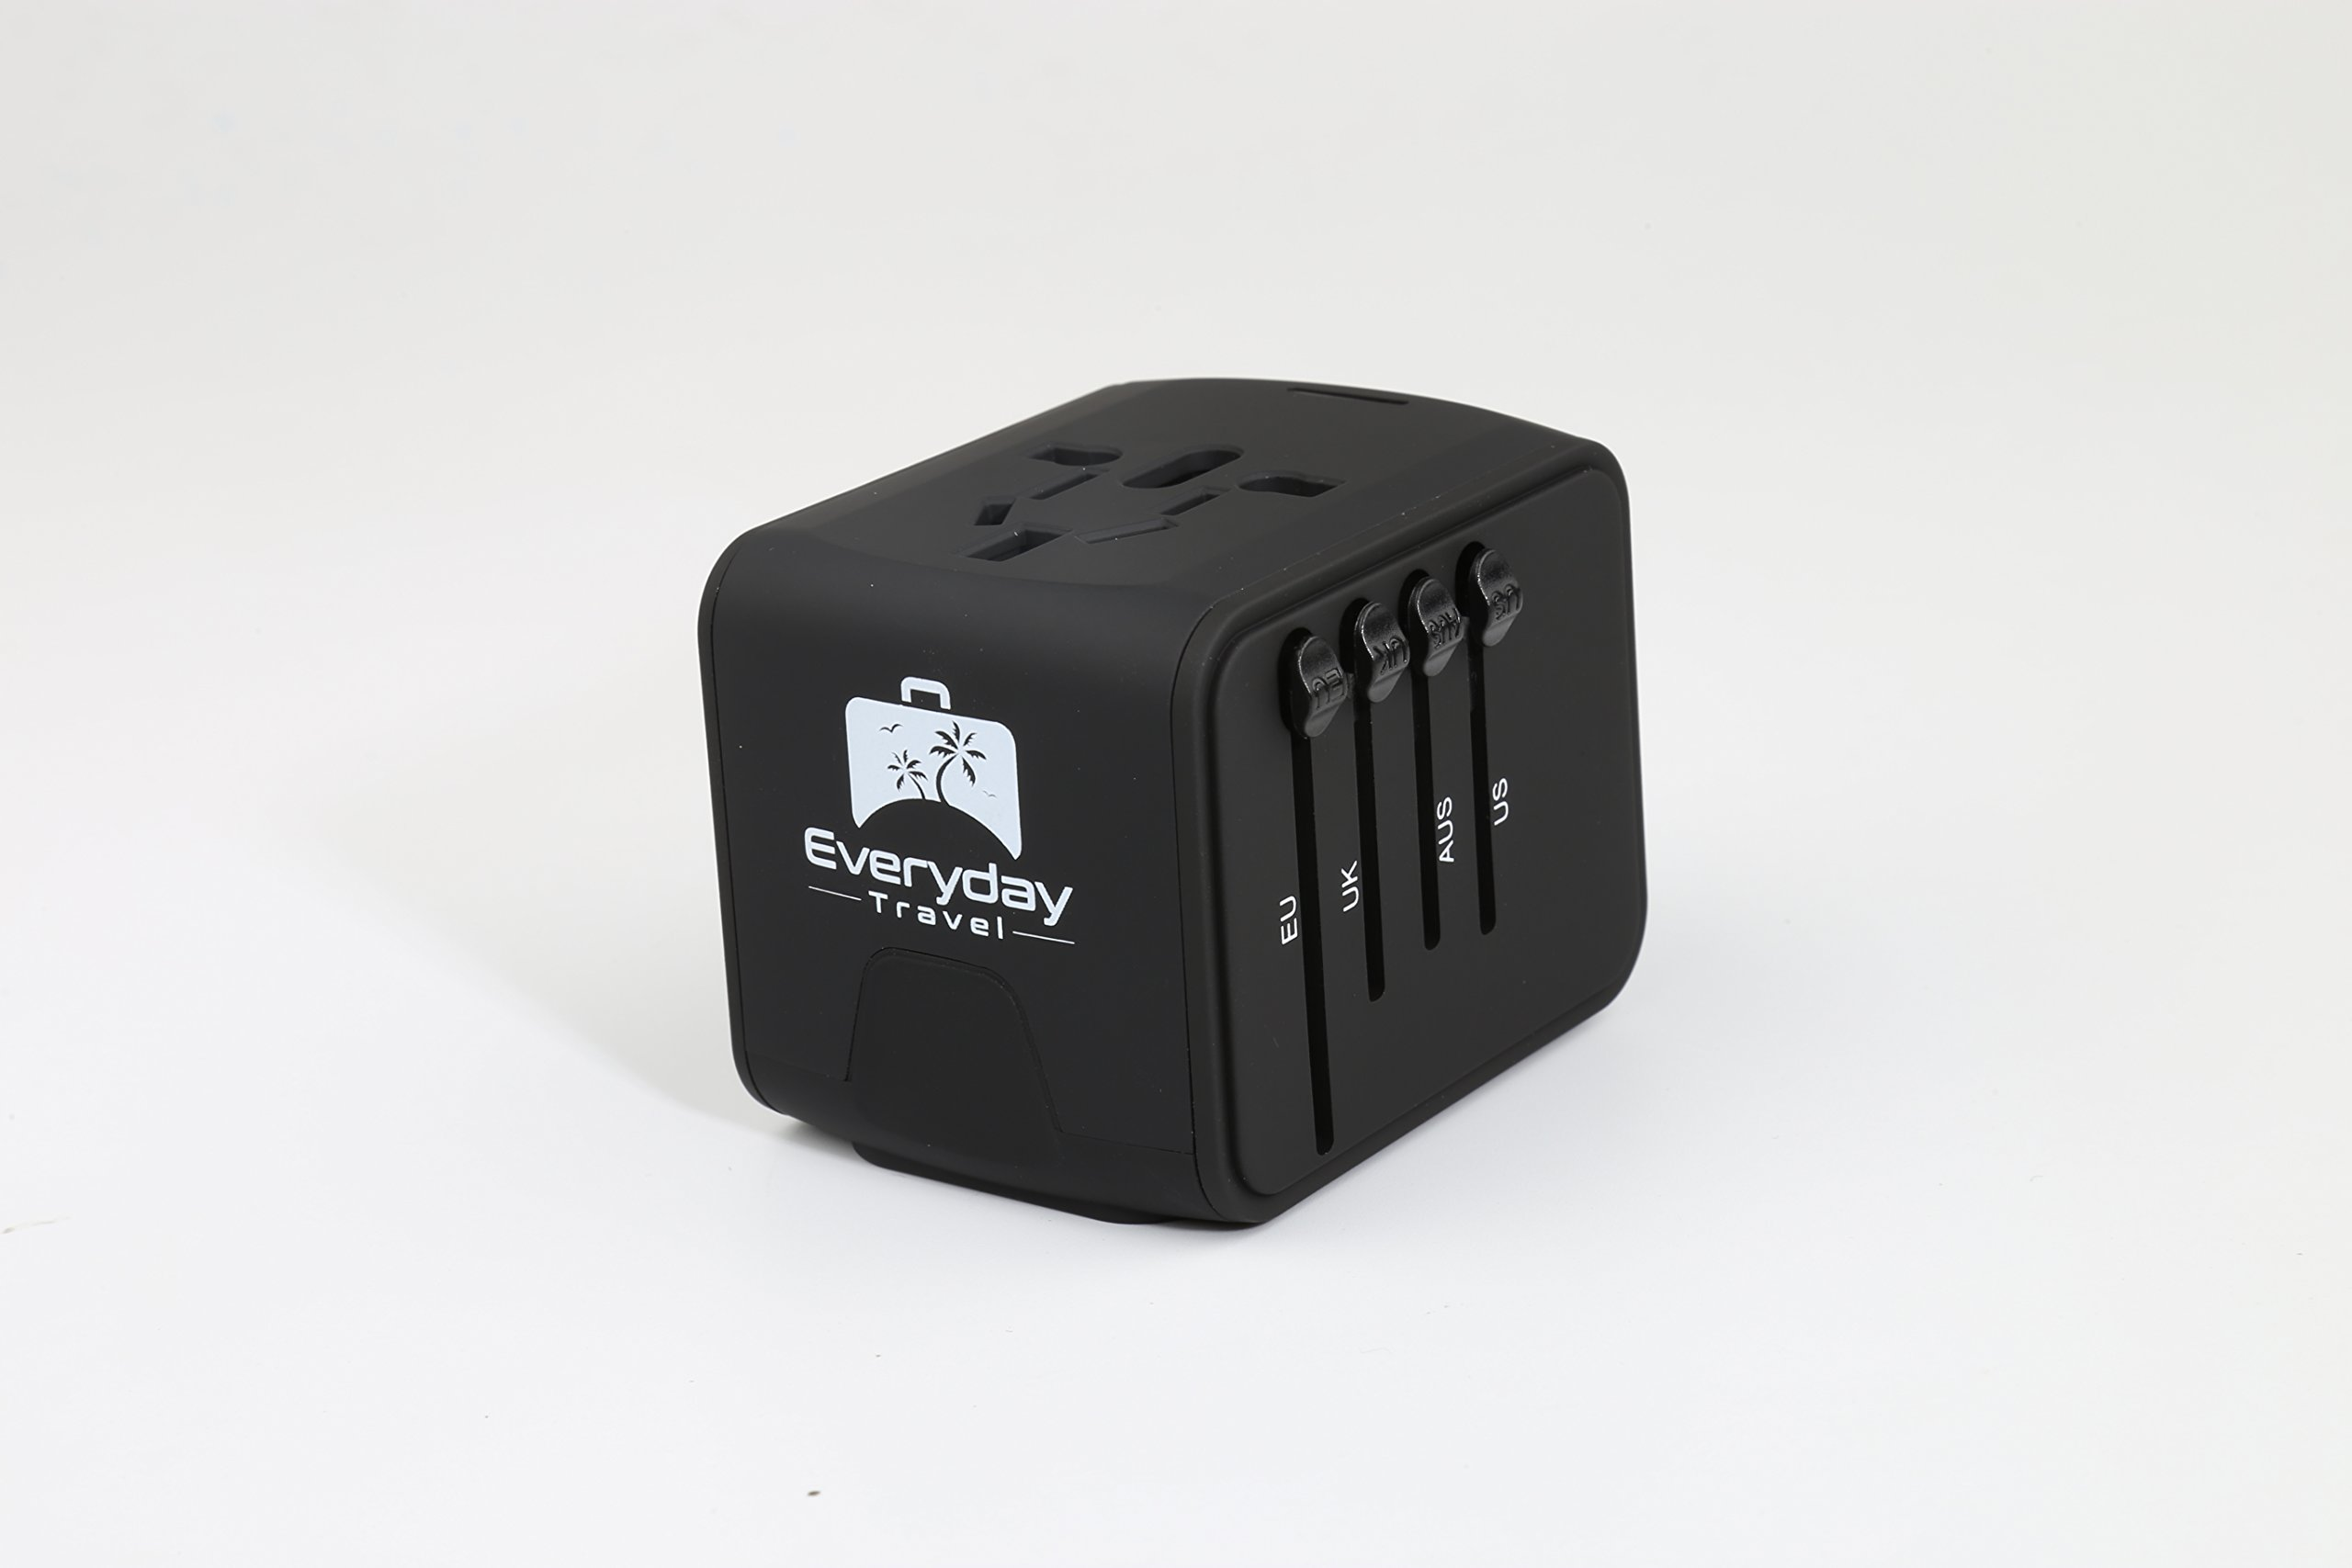 International Compact All-in-one Travel Adapter- 110-220v 4xUSB-black Works worldwide